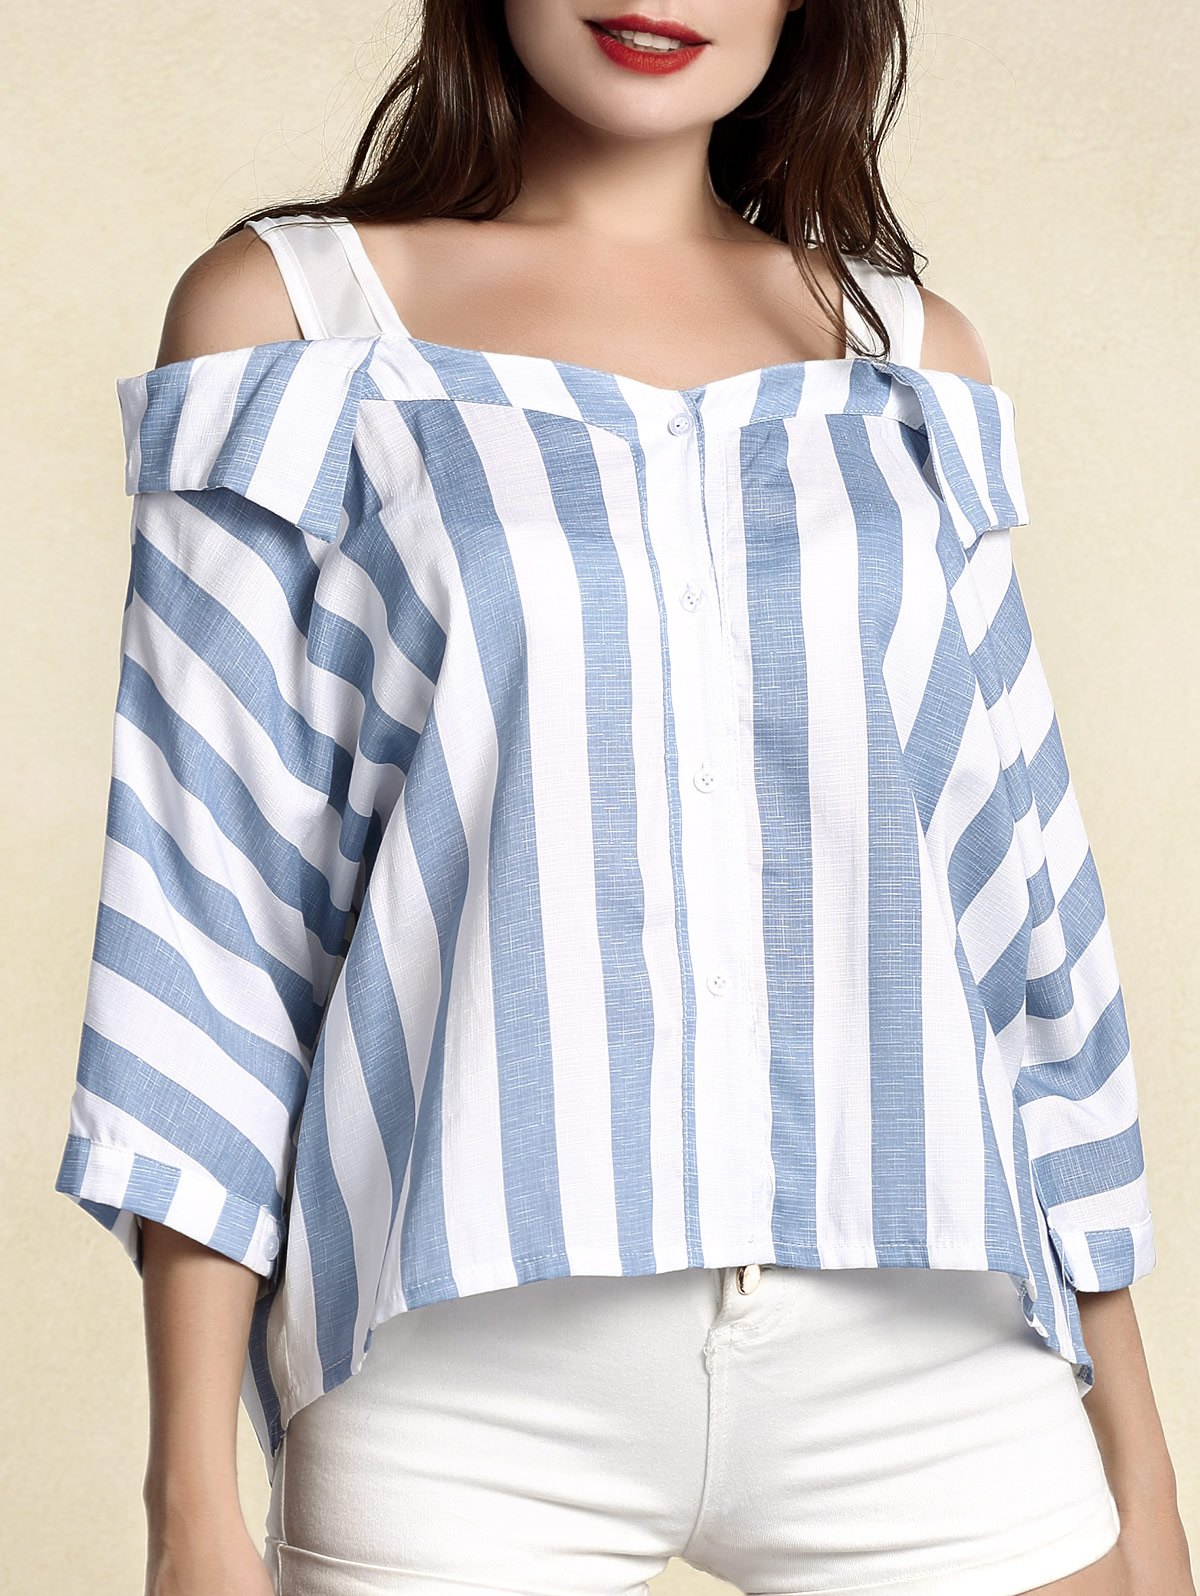 Chic Women's Striped 3/4 Sleeve Cut Out Blouse